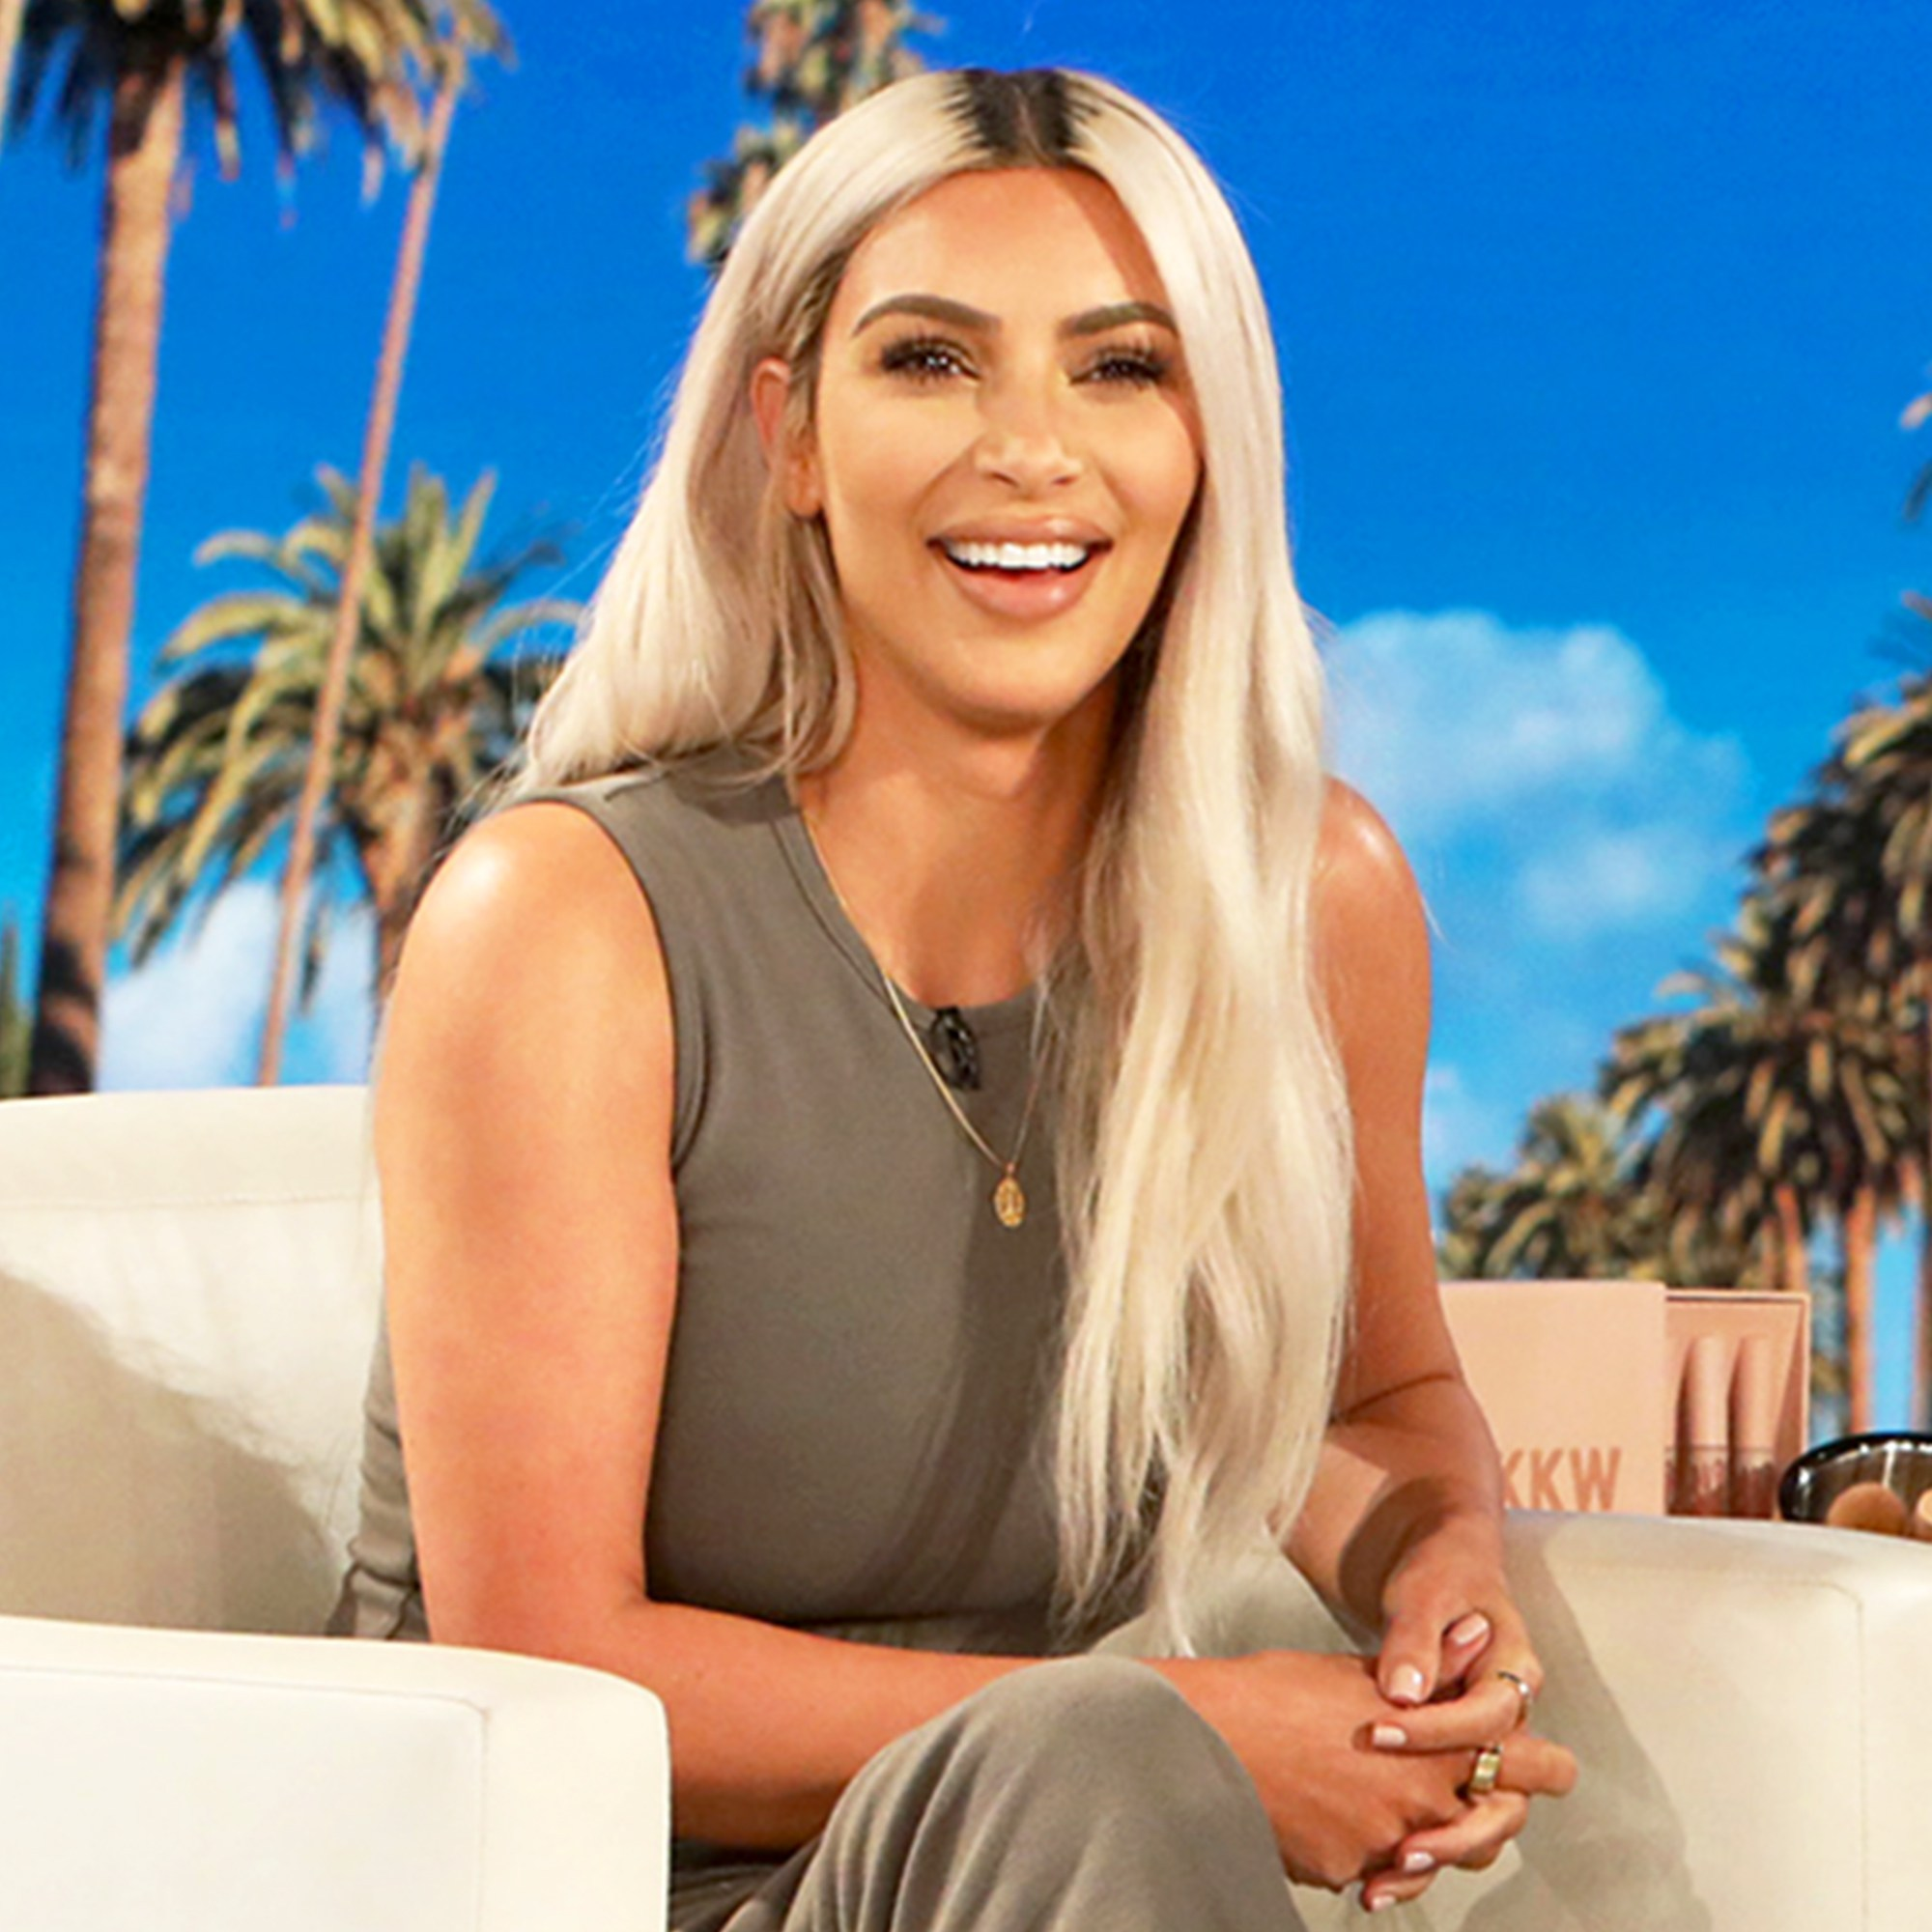 Kim Kardashian on 'The Ellen DeGeneres Show'